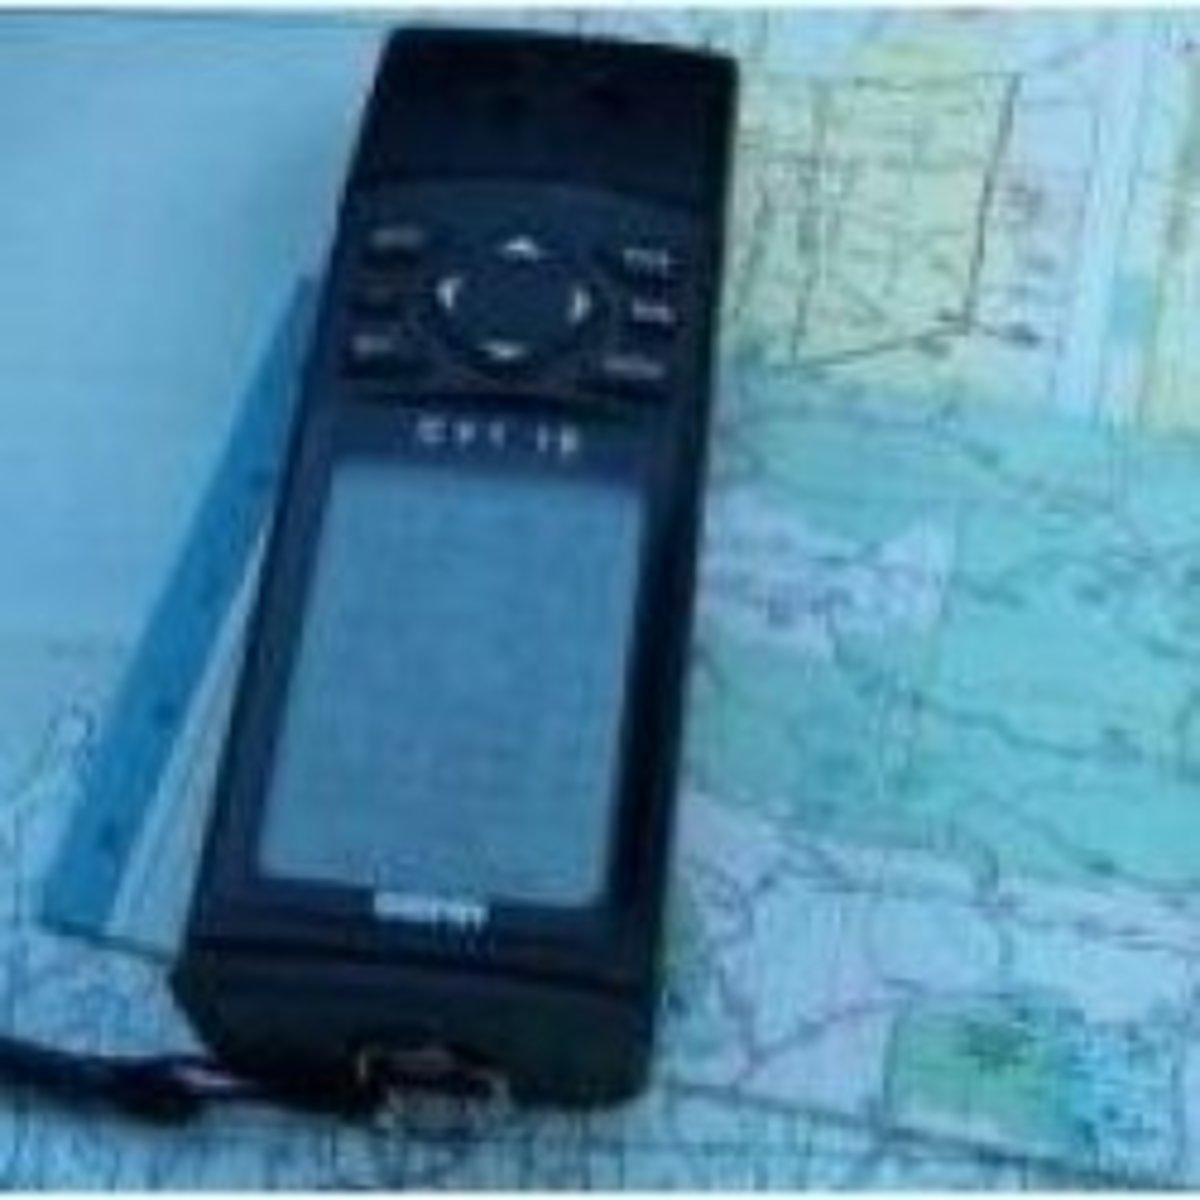 How to Use a Gps: Coordinate Systems and Datums